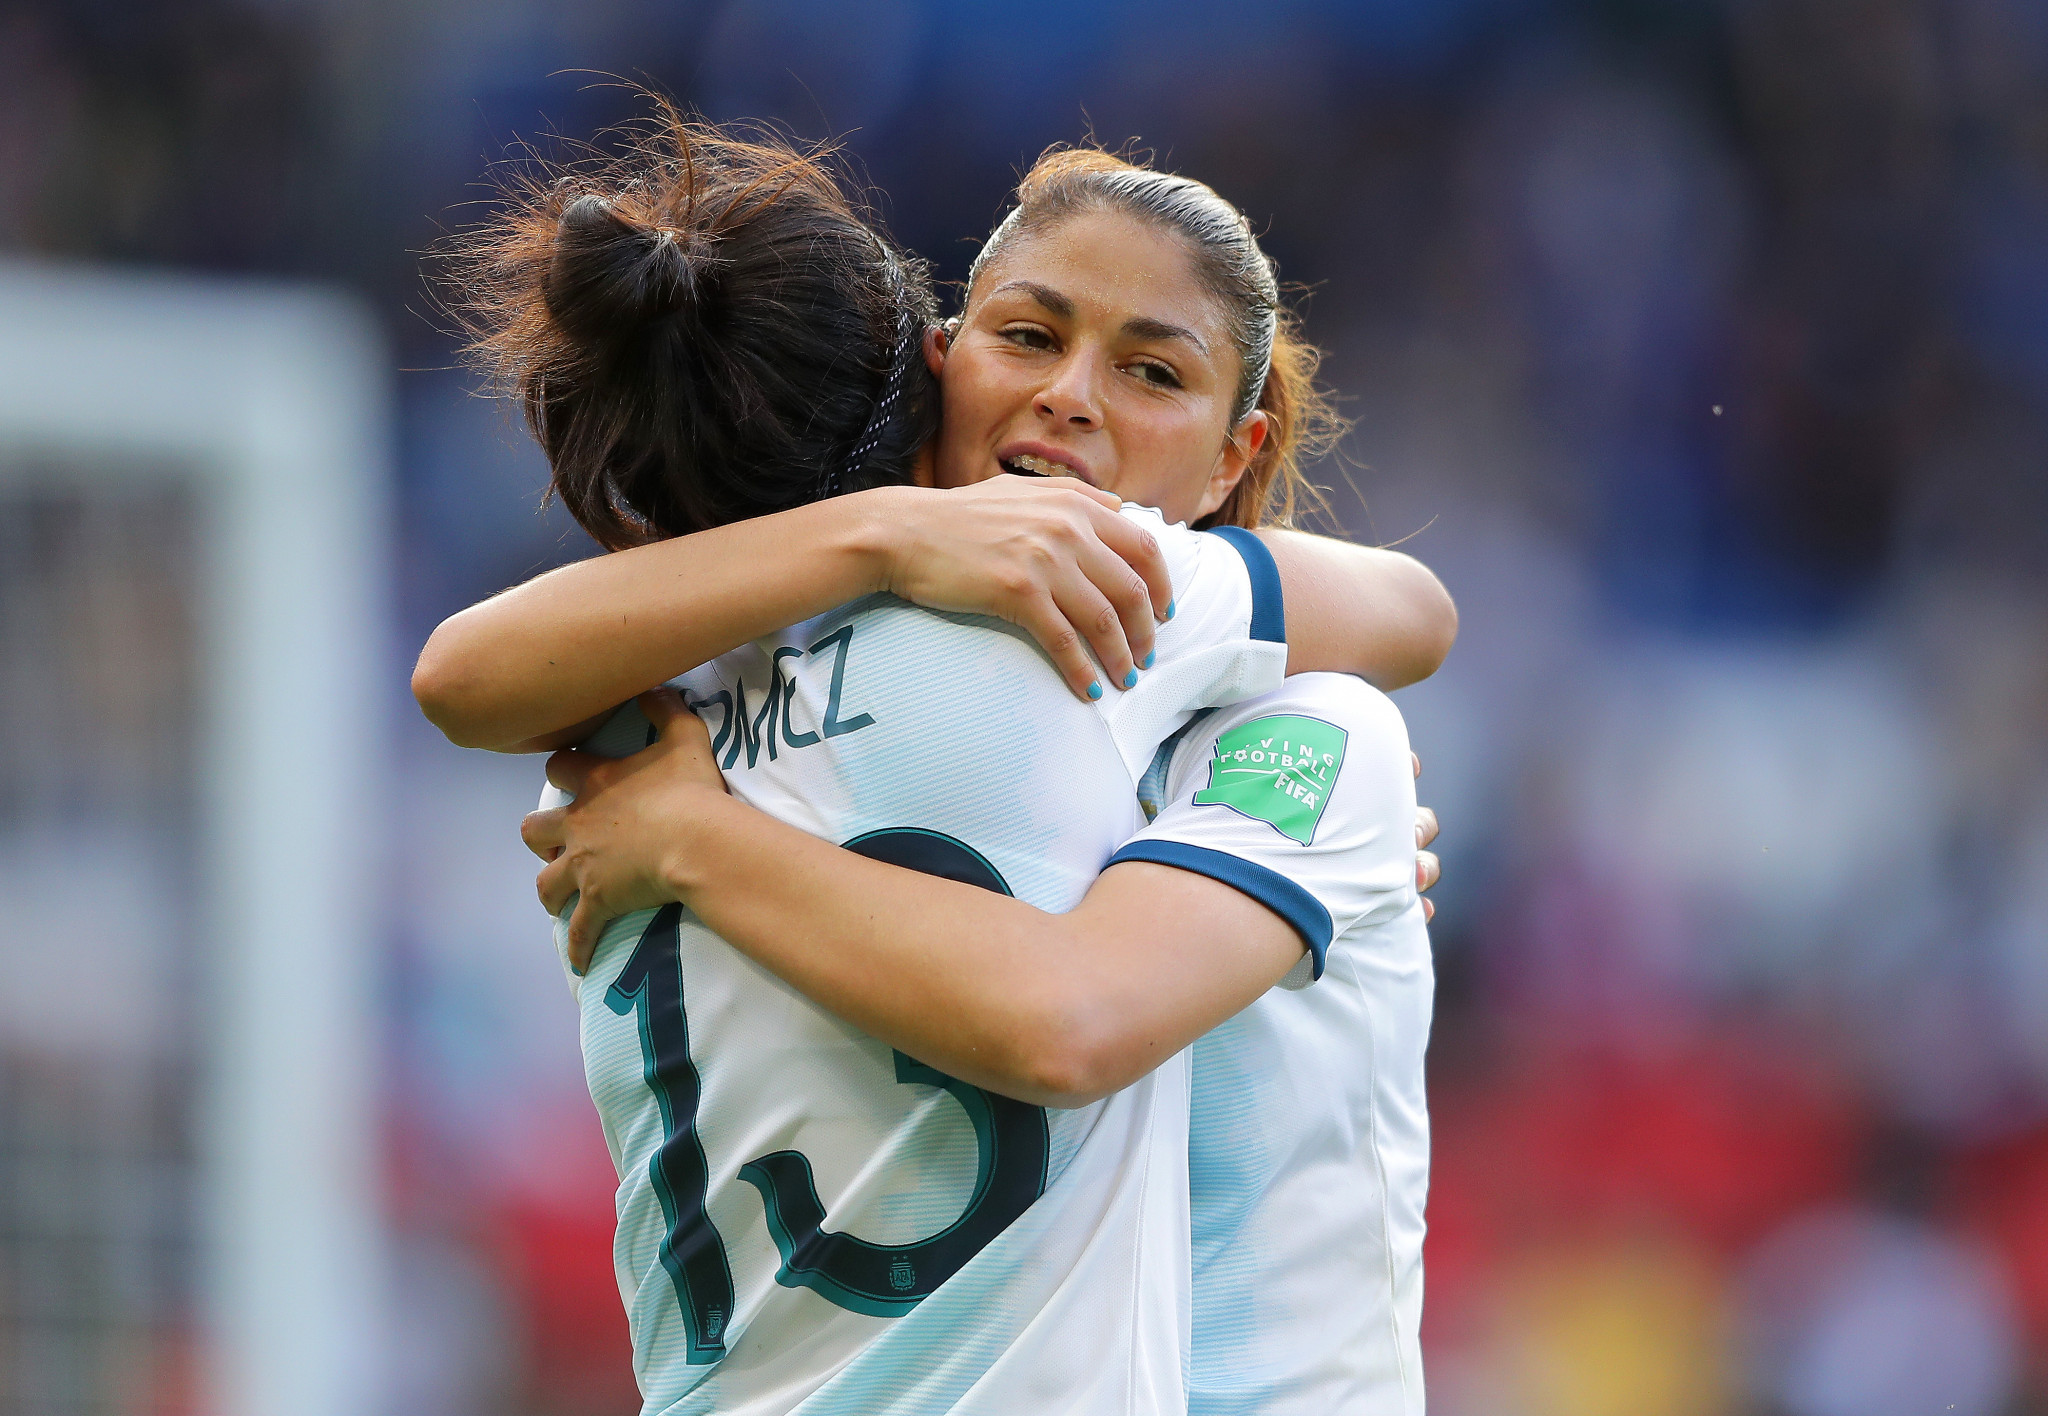 Emotions high as Argentina make FIFA Women's World Cup history at Parc des Princes